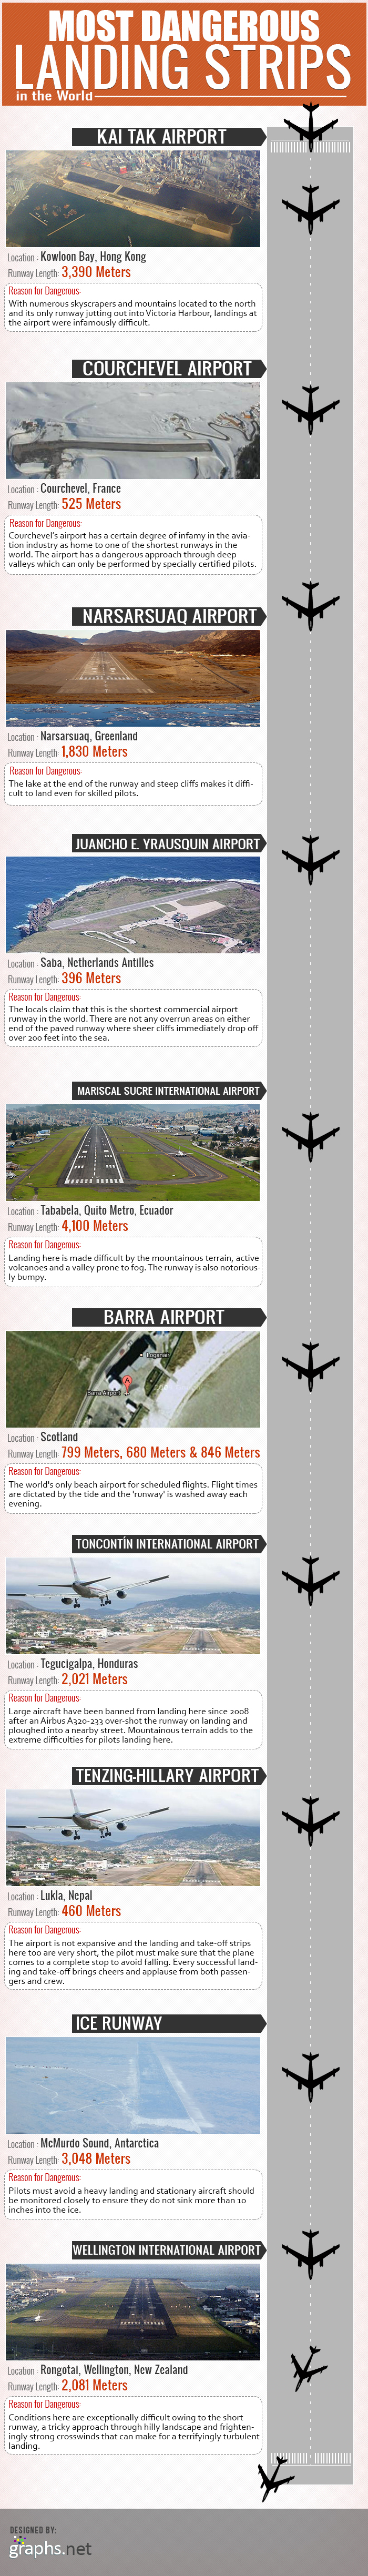 Most Dangerous Landing Strips in the World